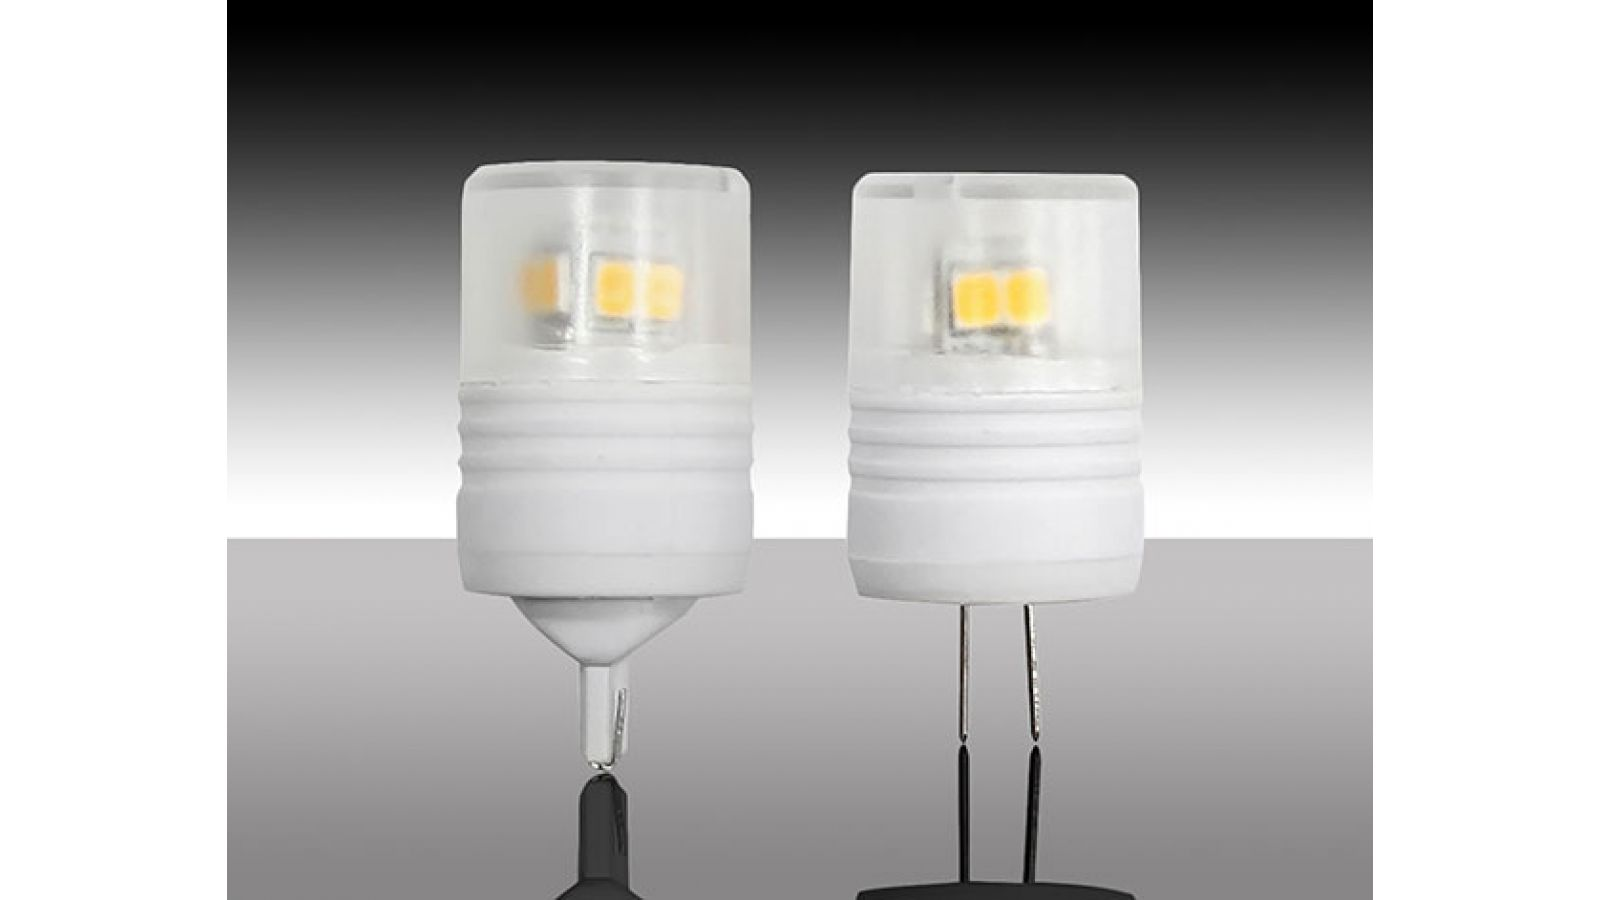 LED Wedge and G4 Base Lamps